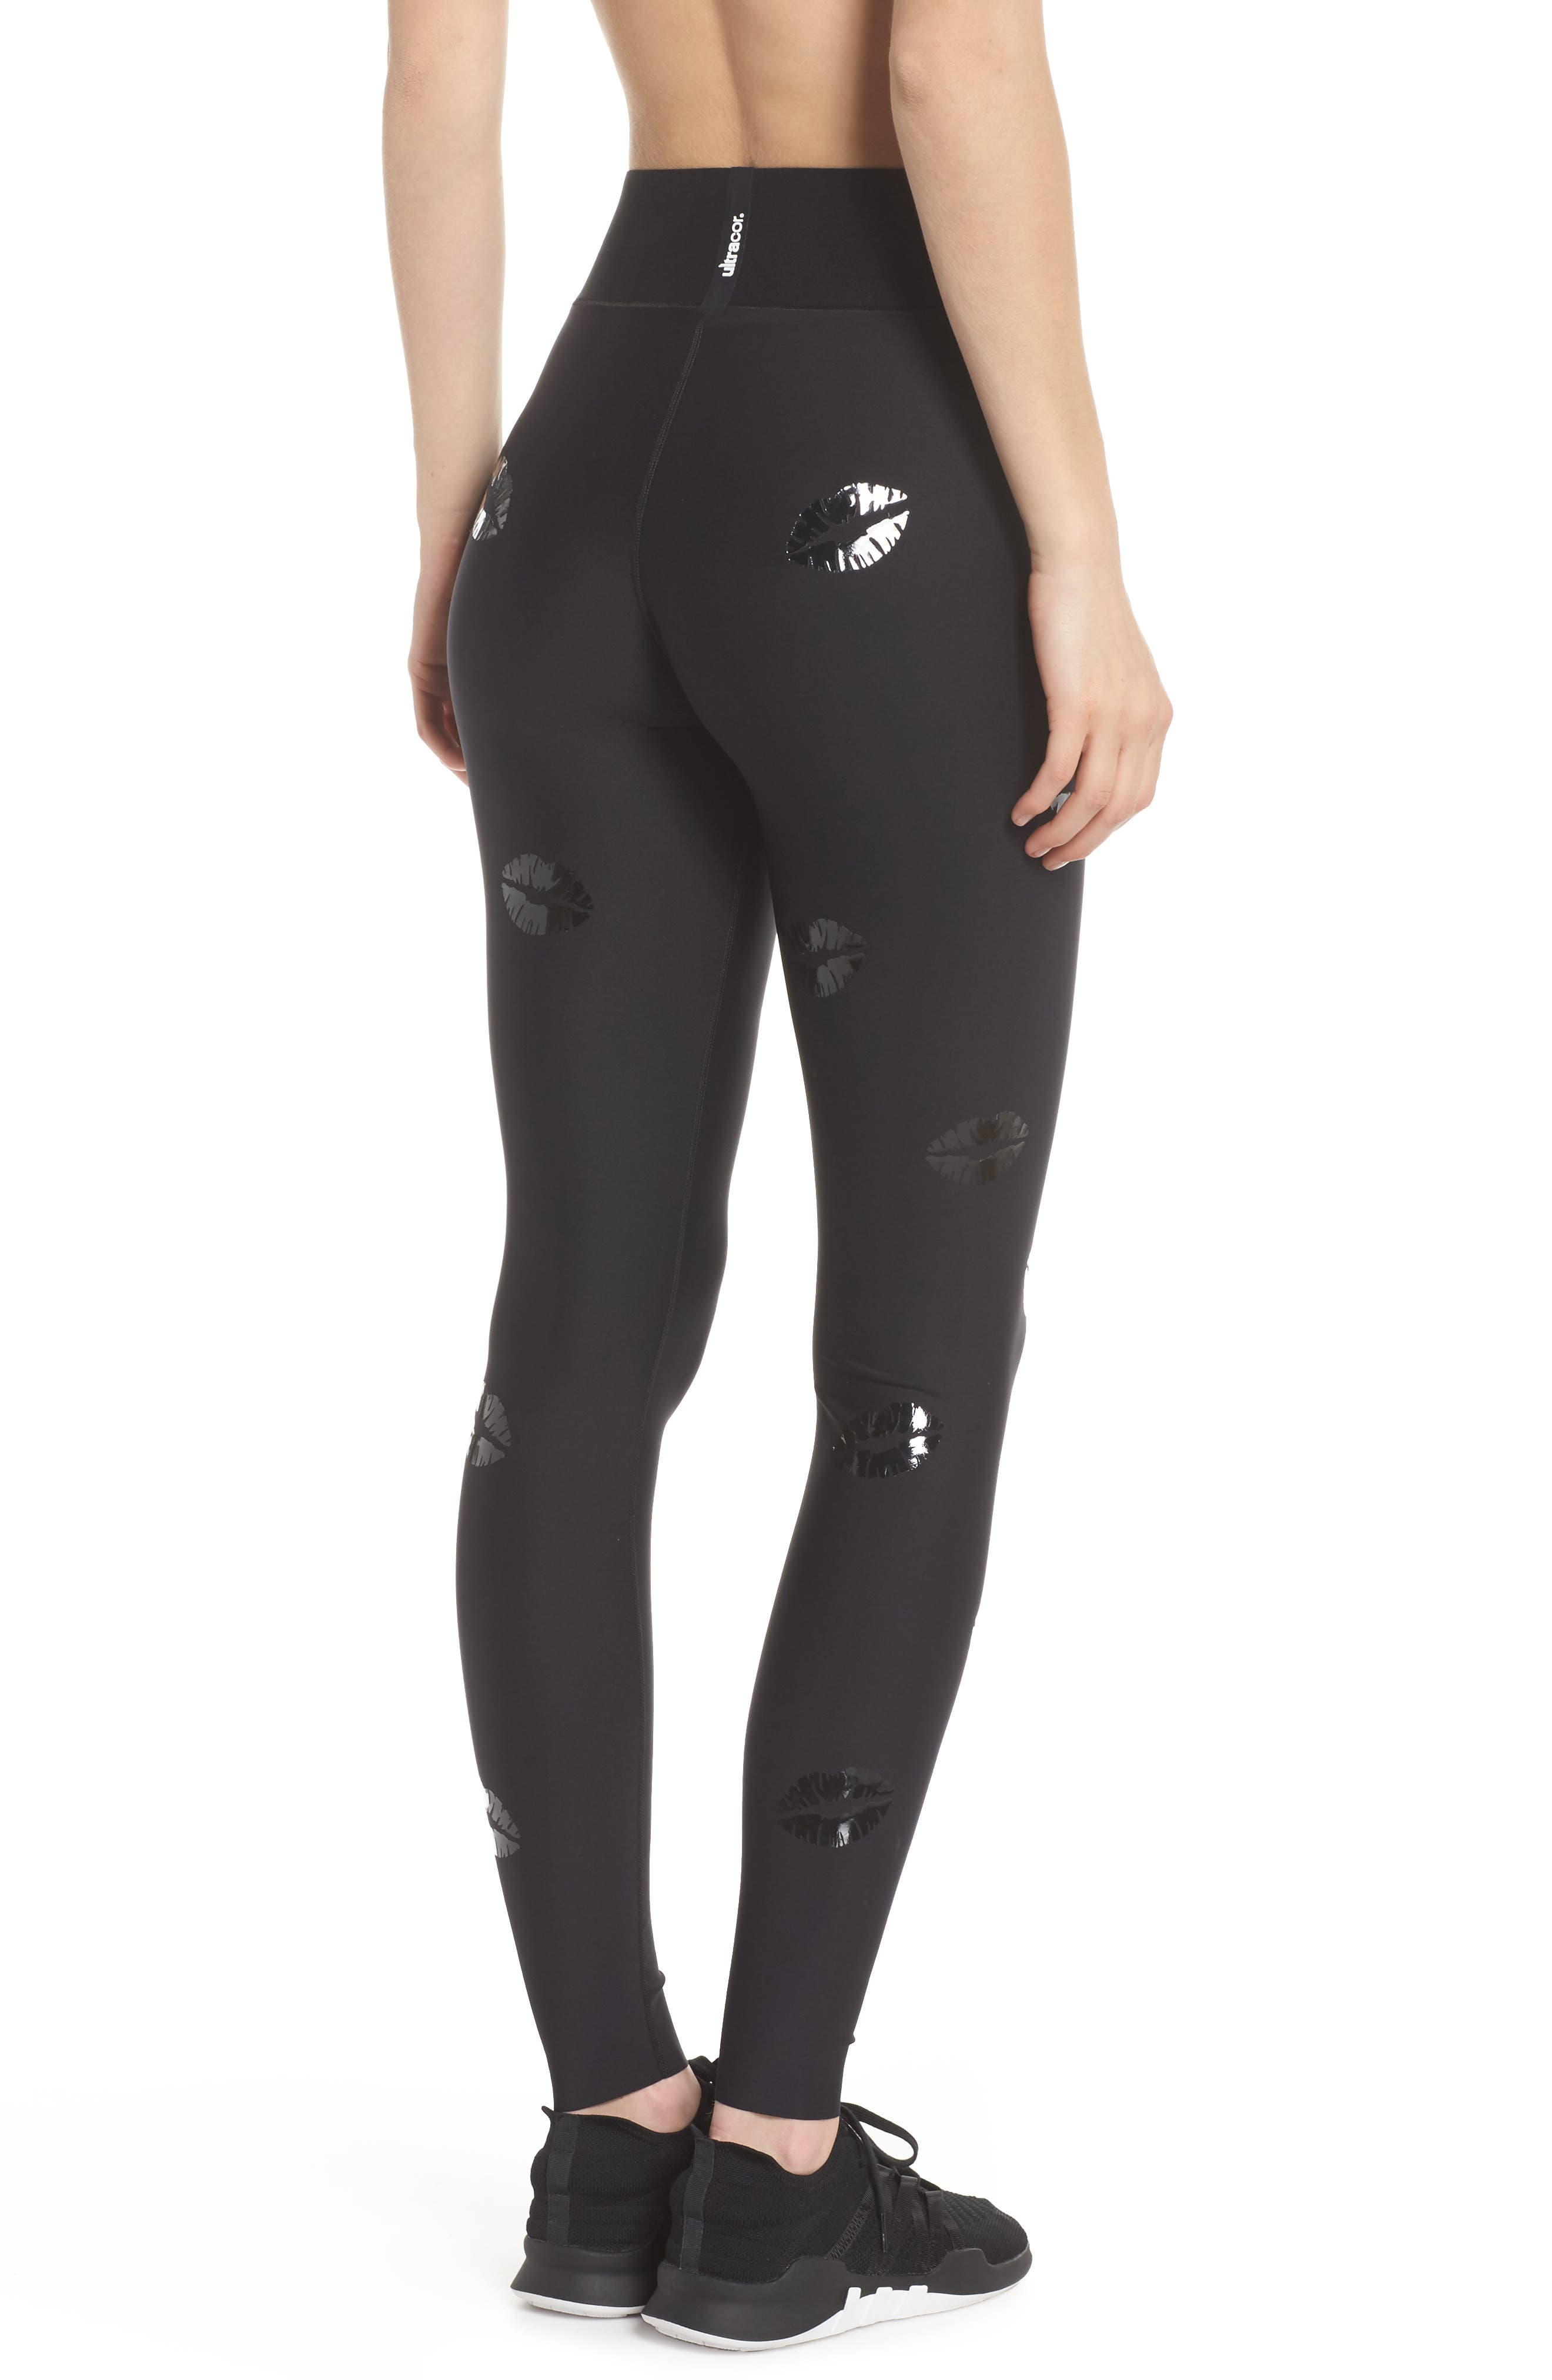 Make Out Lux High Waist Leggings,                             Alternate thumbnail 2, color,                             002